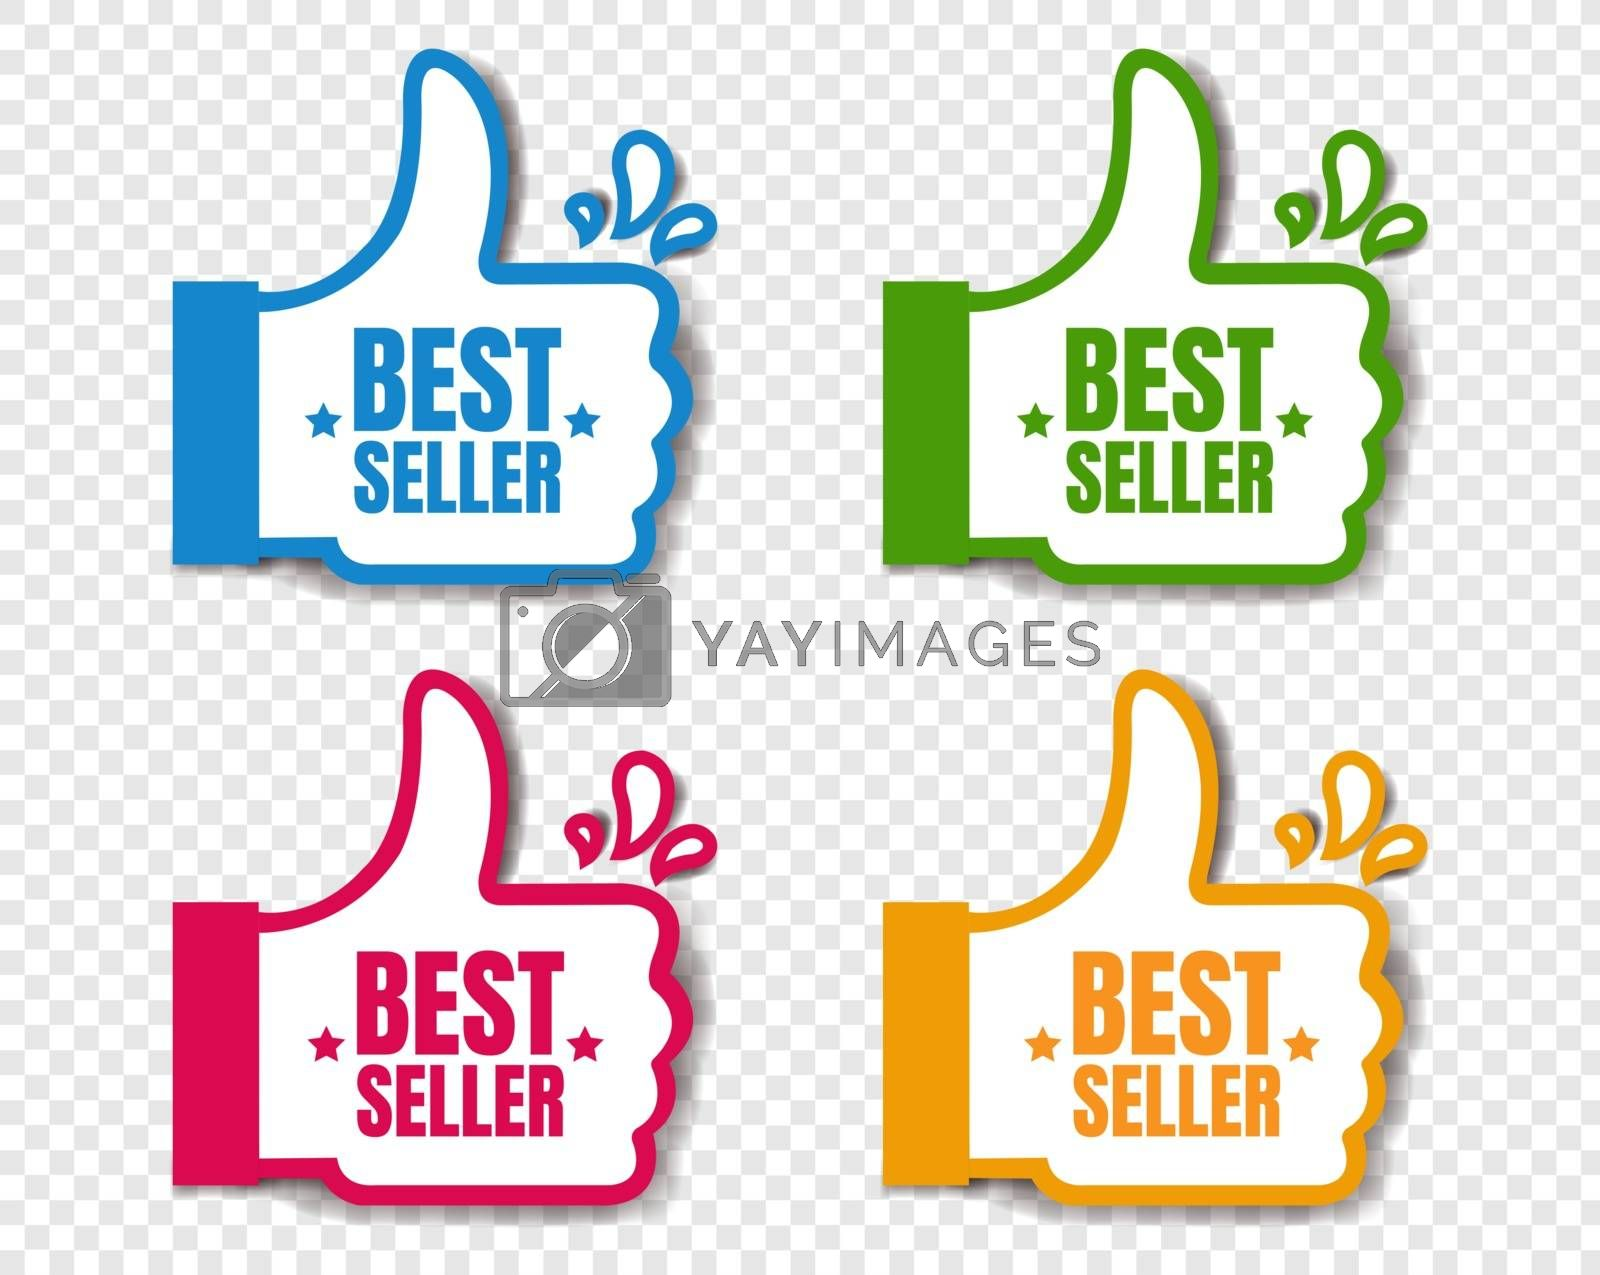 Bestseller Stickers Isolated Transparent Background With Gradient Mesh, Vector Illustration